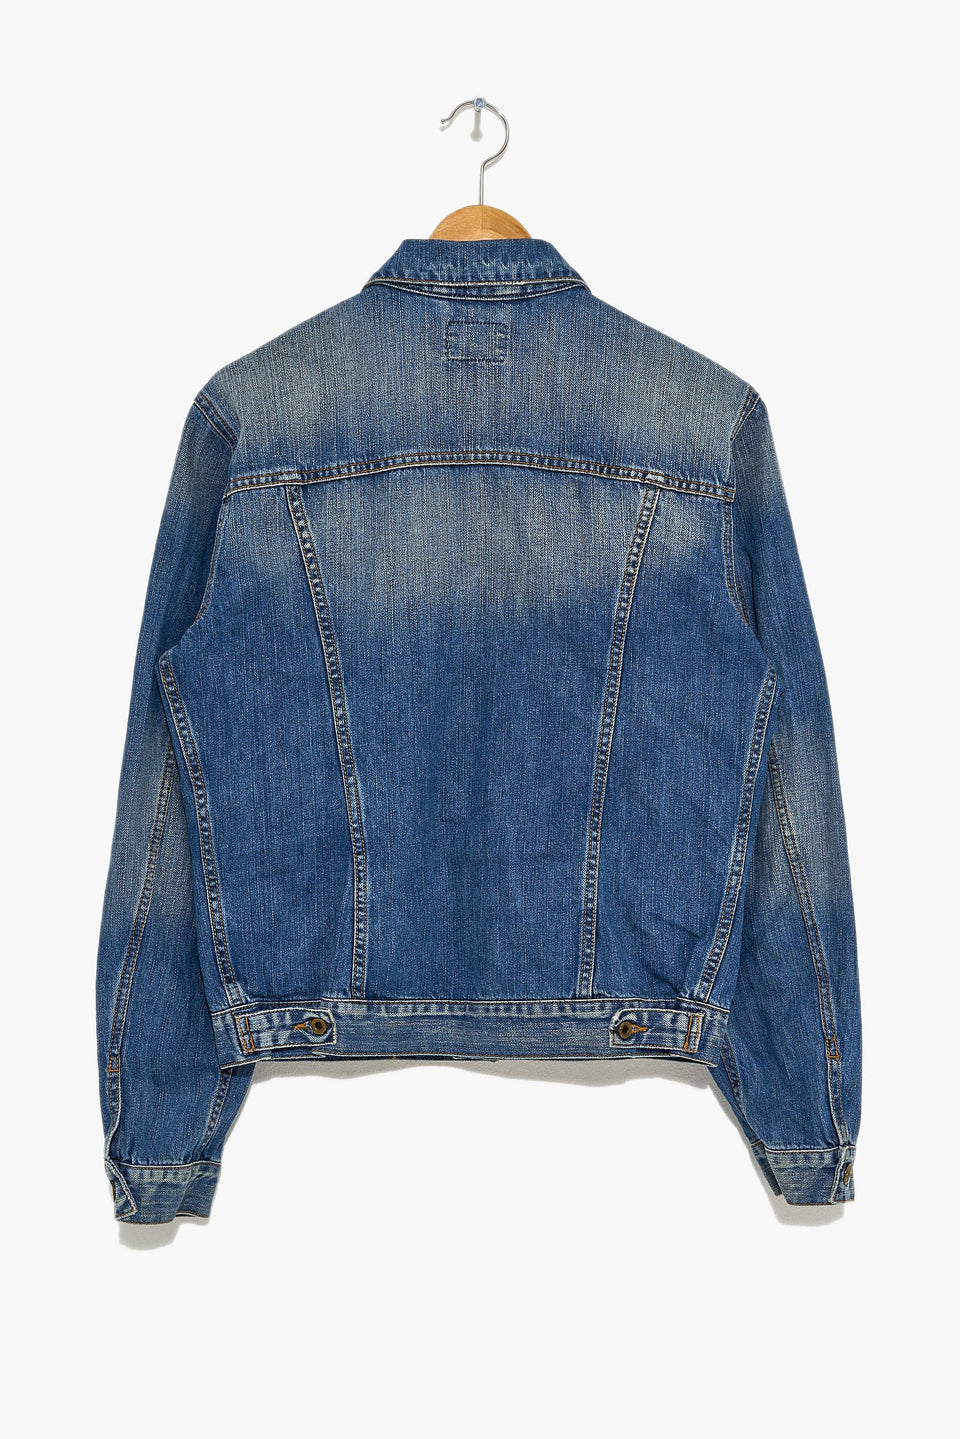 Replay and Sons Denim Jacket